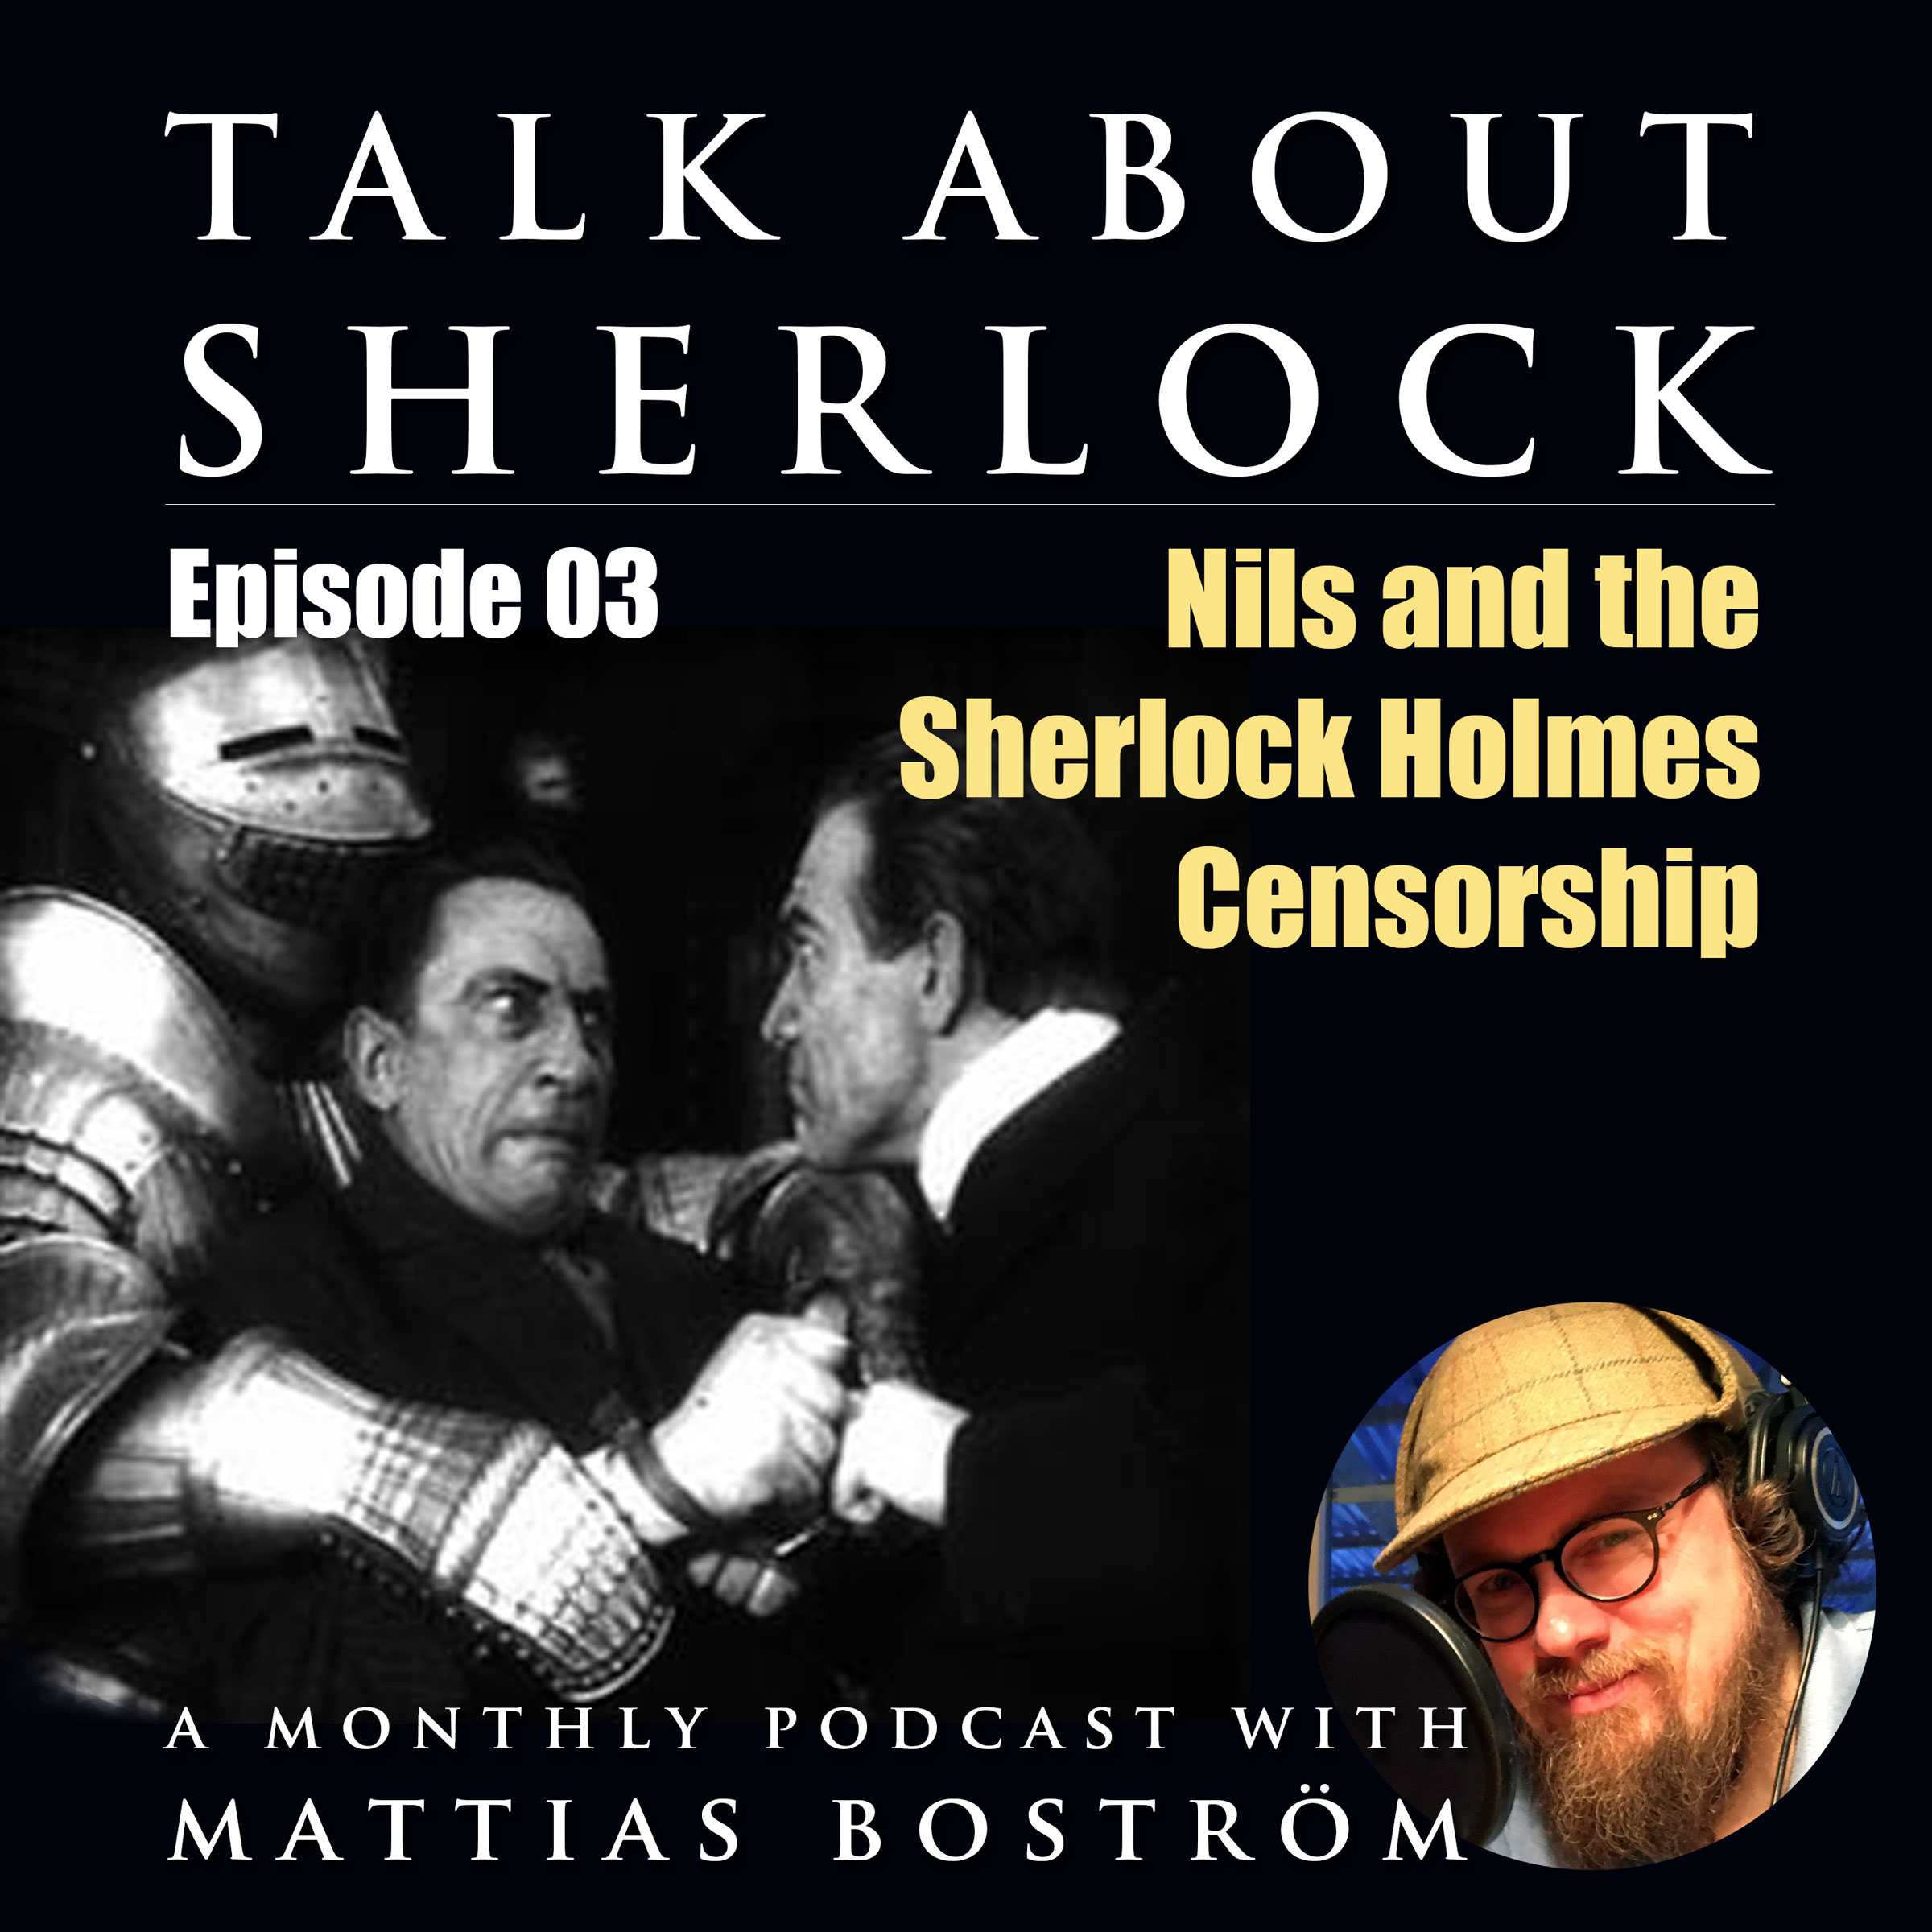 Episode 03: Nils and the Sherlock Holmes Censorship